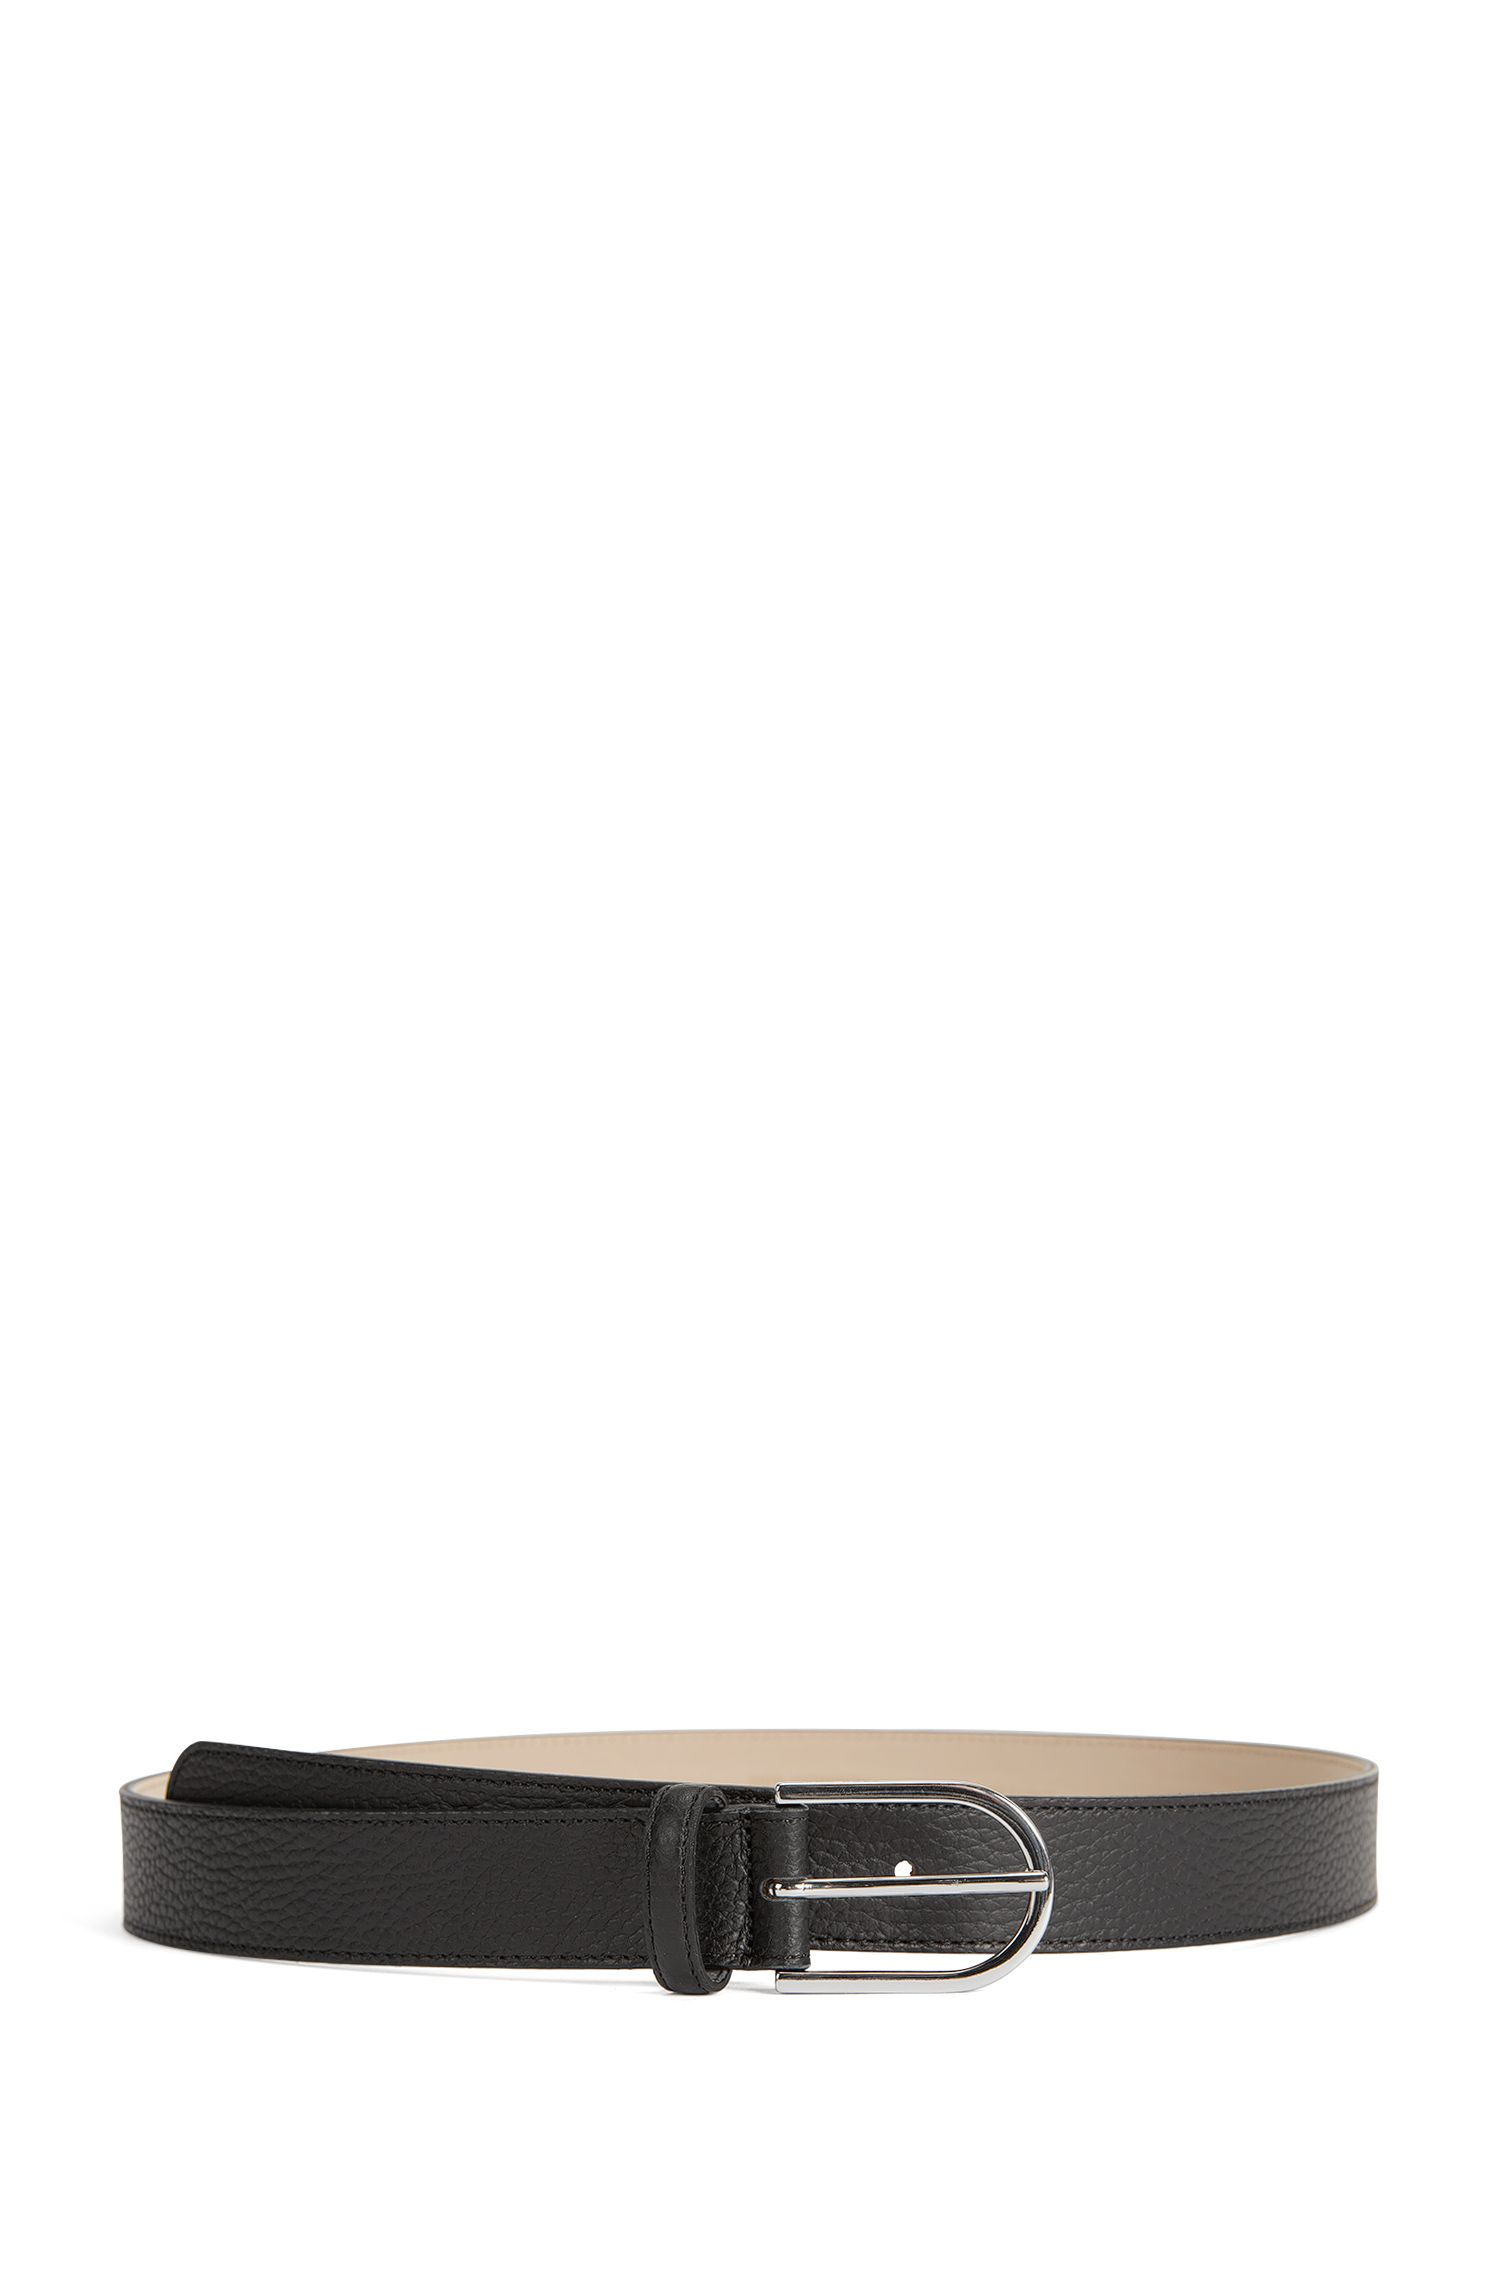 Grained-leather belt with a rounded buckle